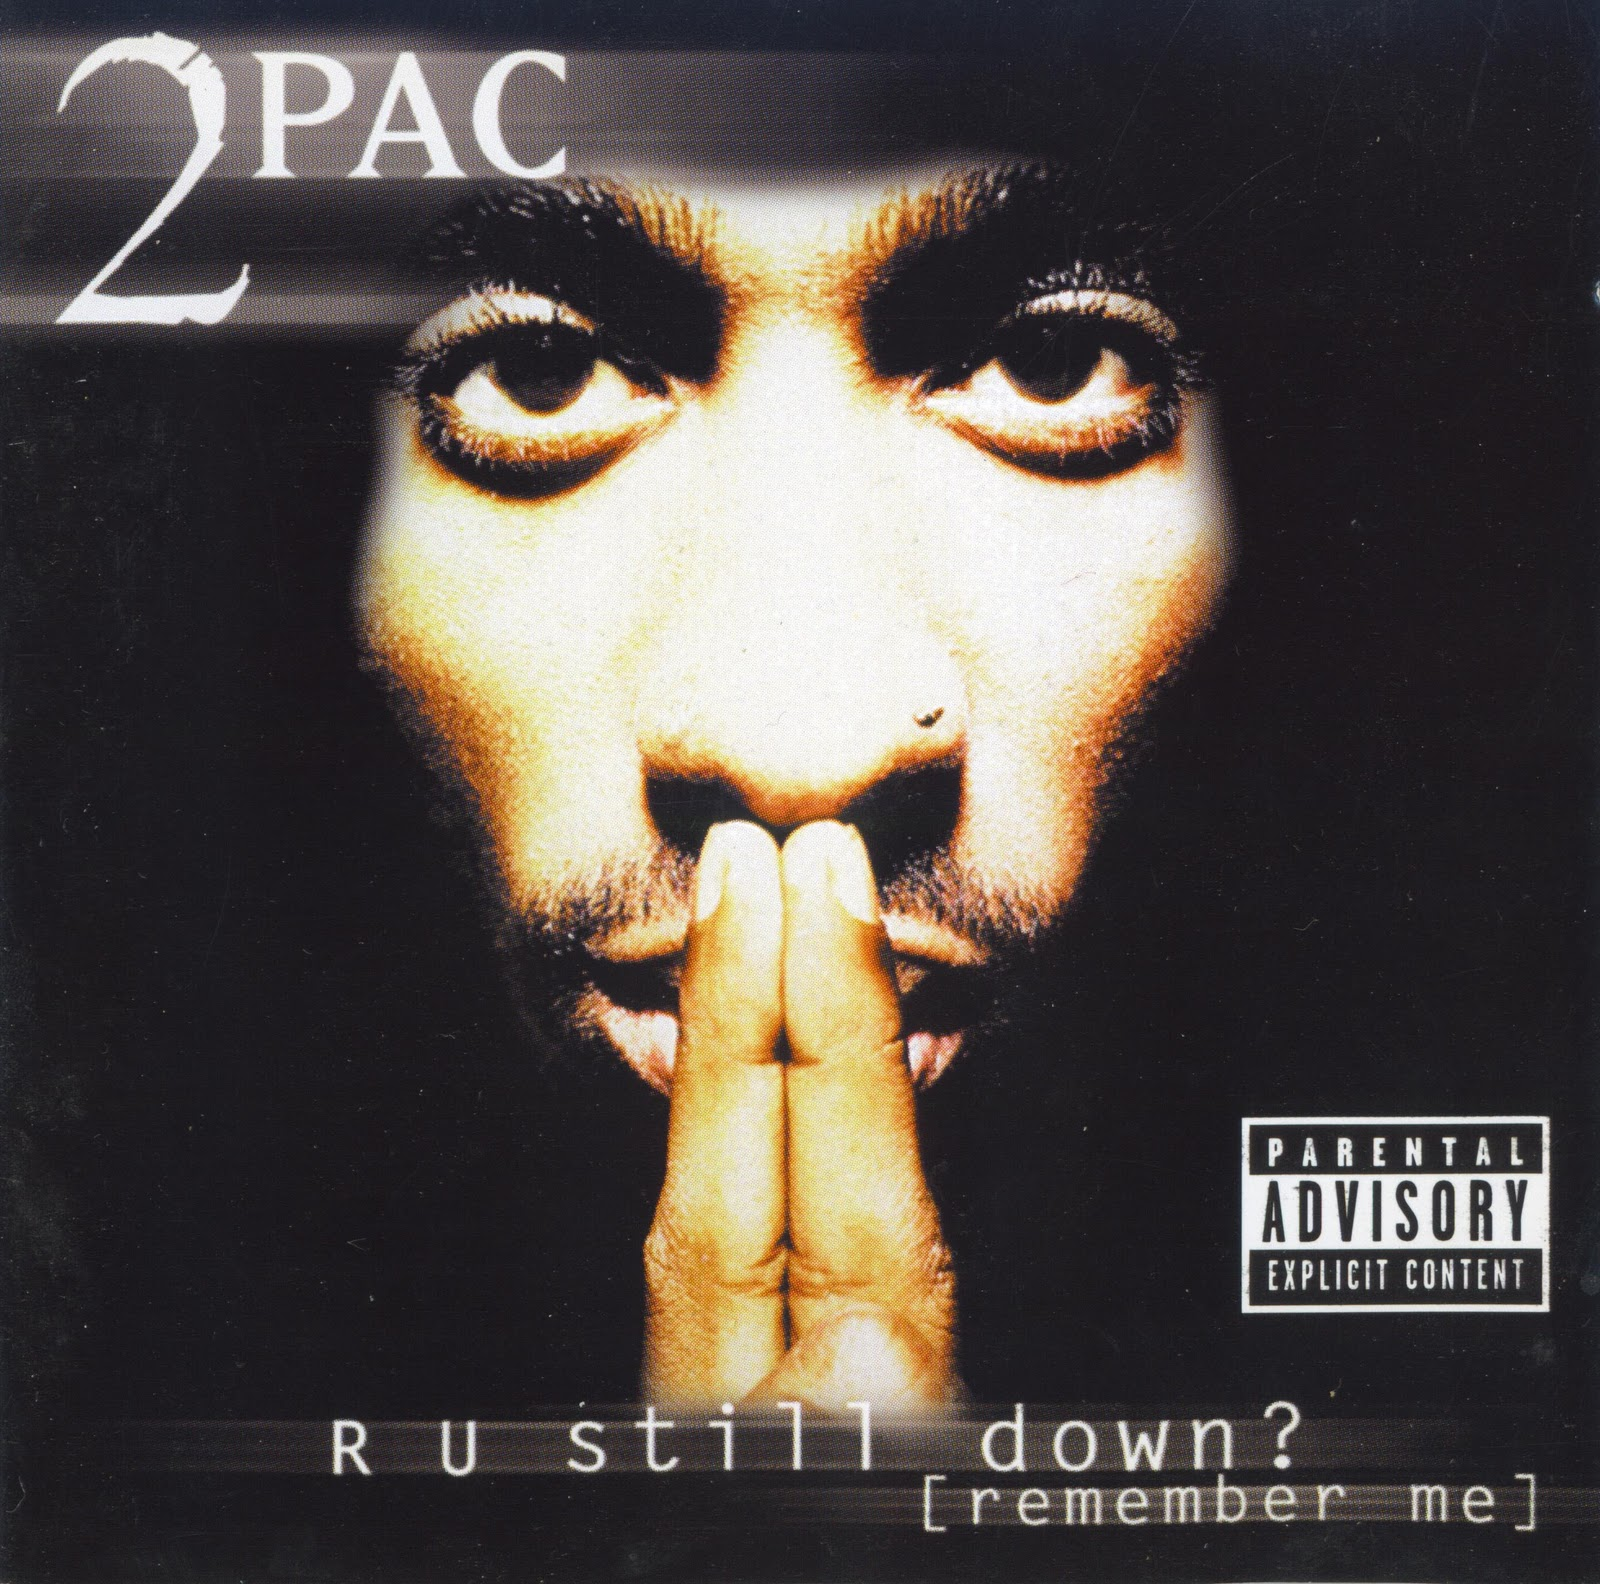 2pac r u still down